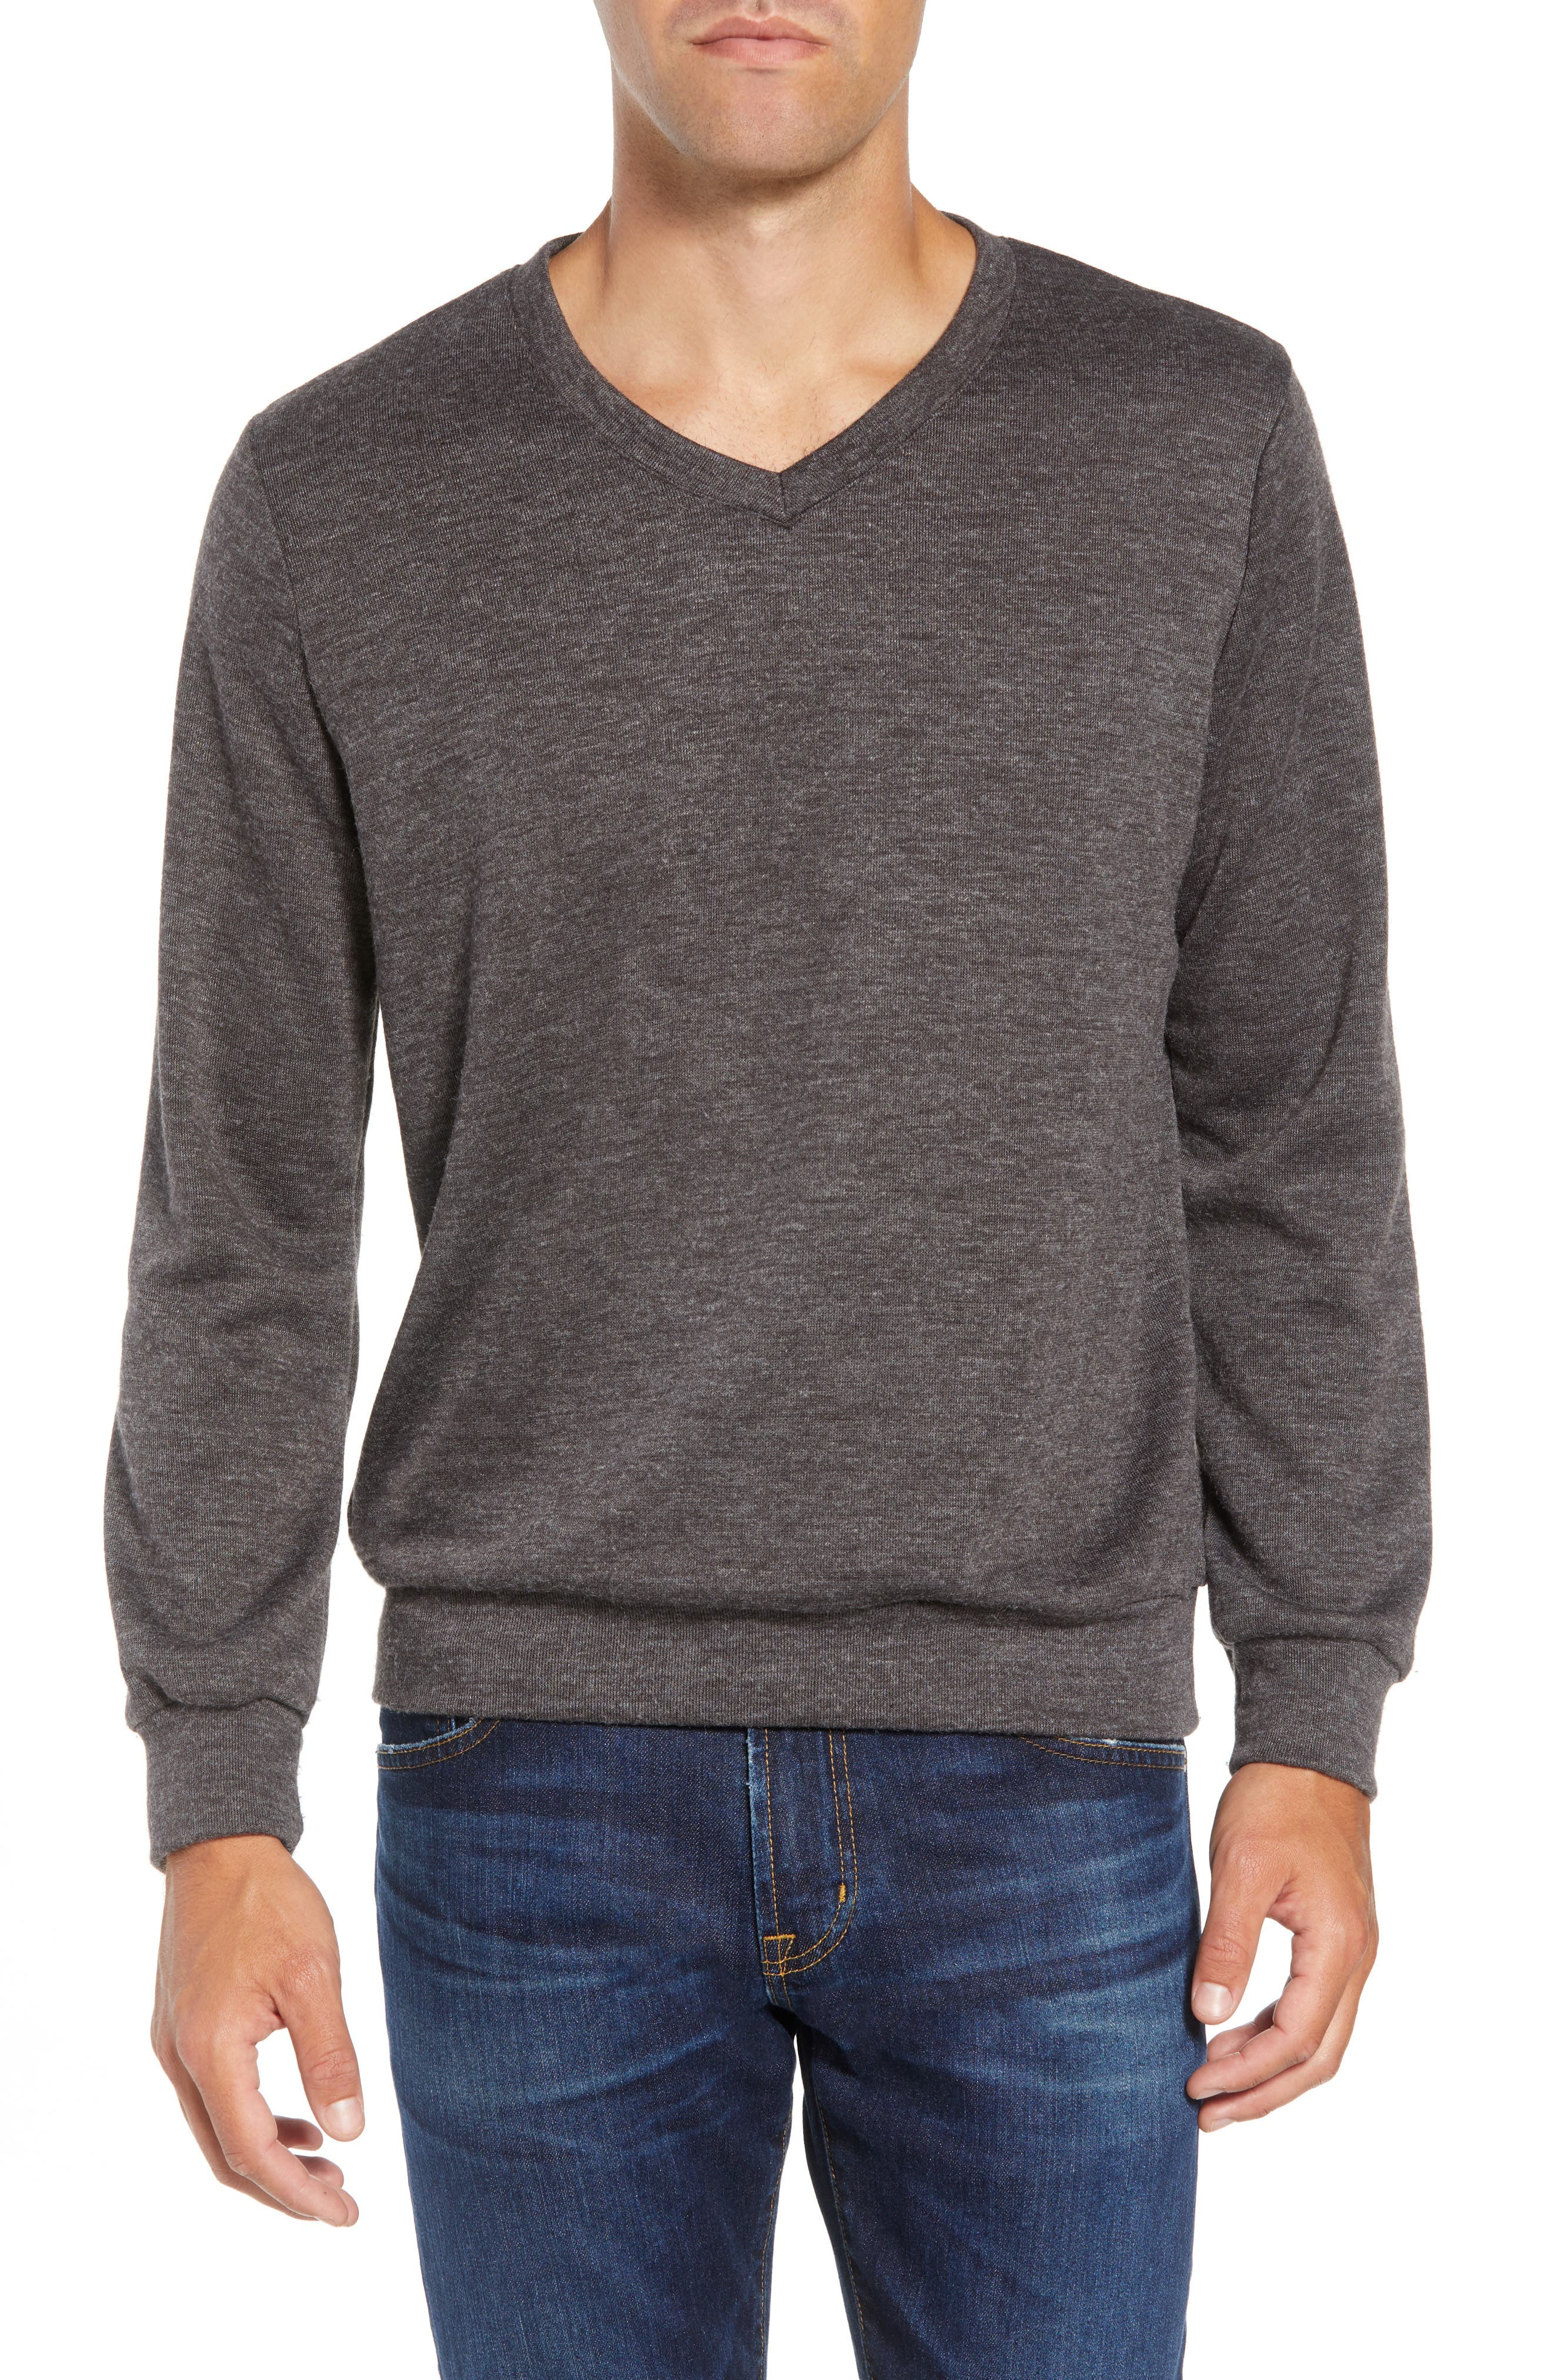 Prospect V-Neck Performance Sweater,                         Main,                         color, CHARCOAL